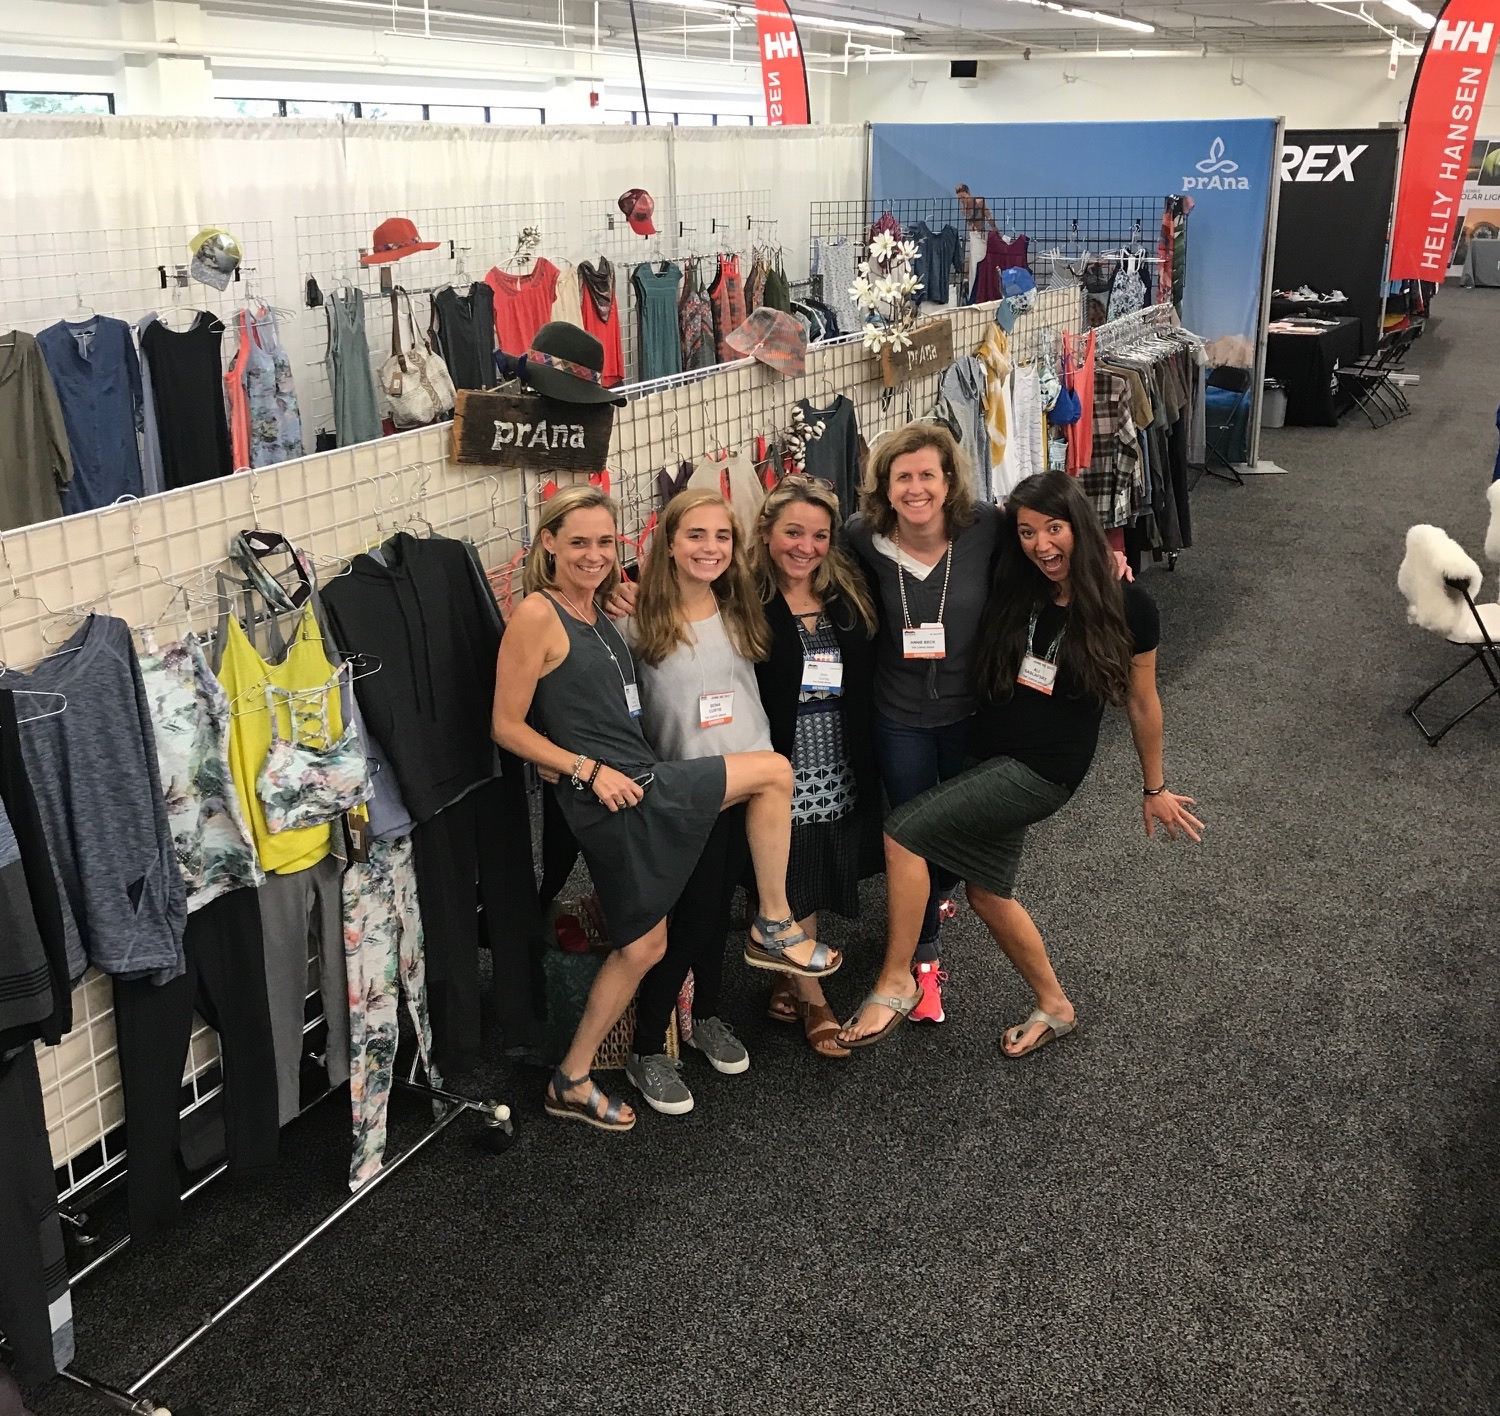 The girls from The Curtis Group having fun at the EORA Summer 2017 show.